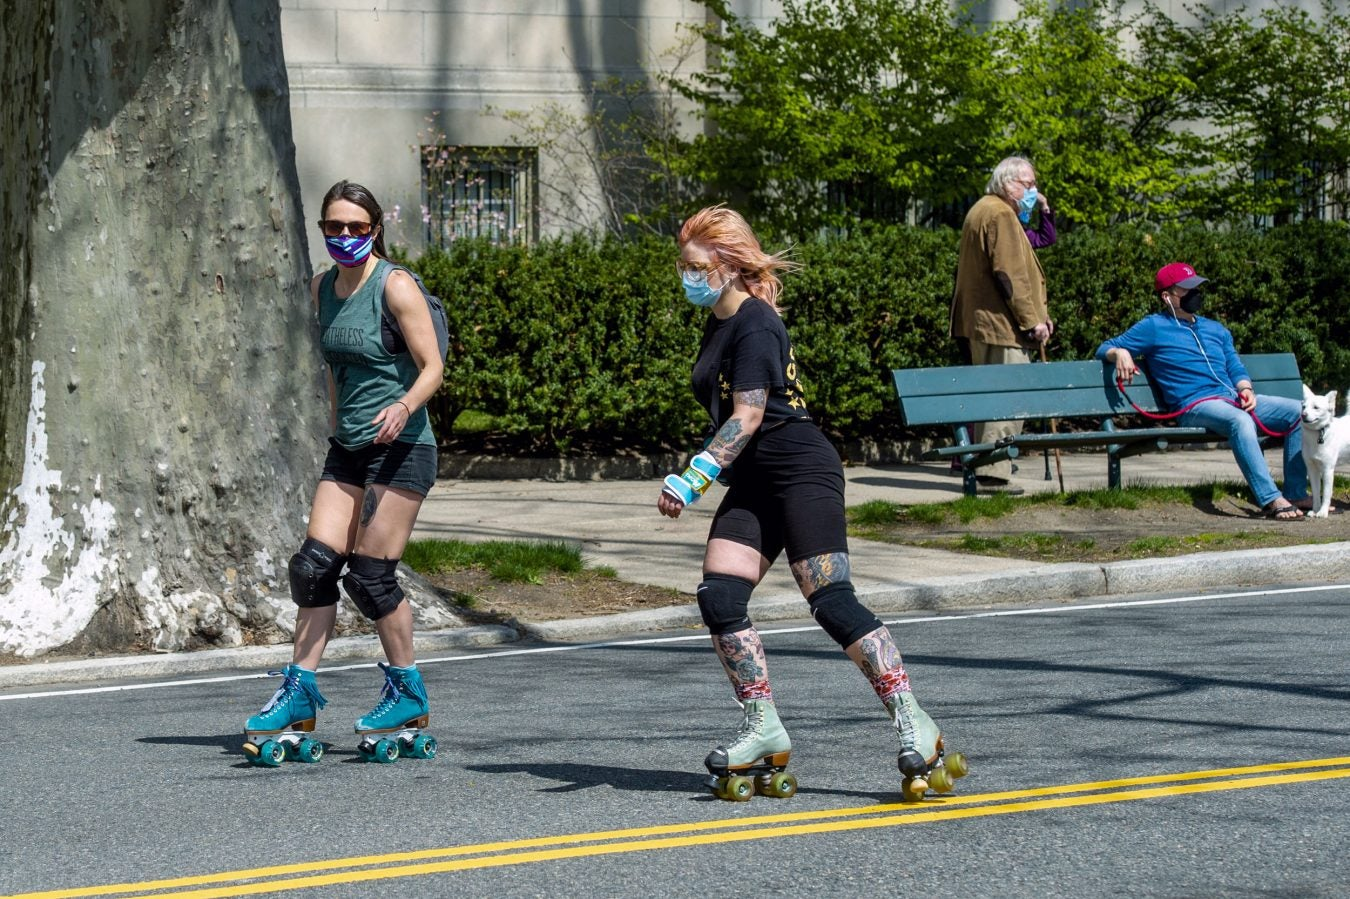 A couple of Rollerbladers glide past a walker and a man sitting on a bench with his dog.